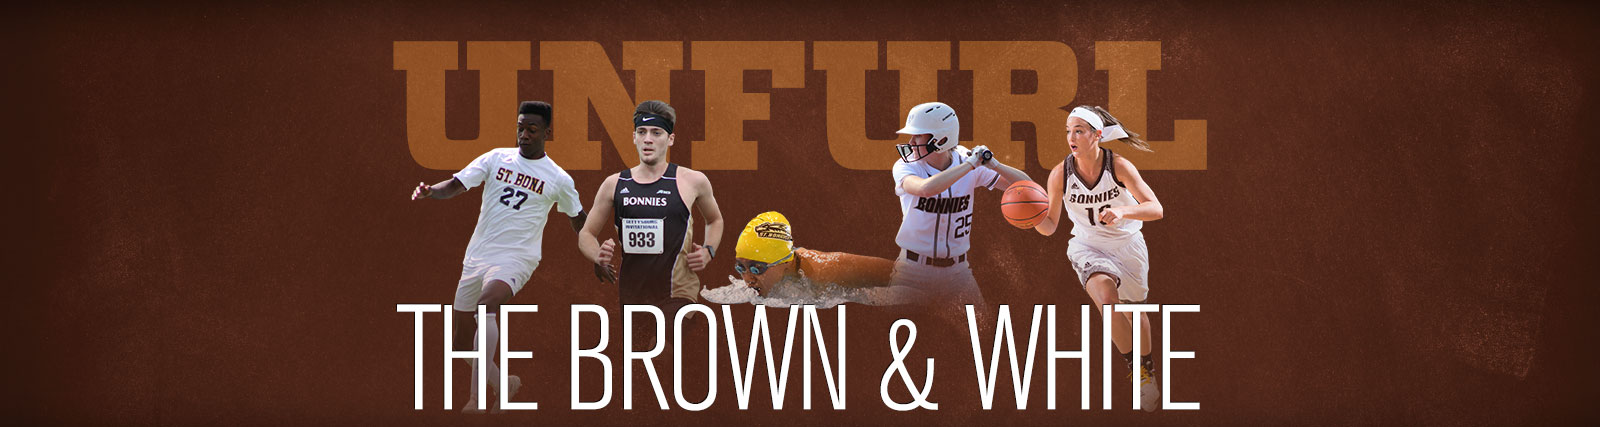 The Brown & White